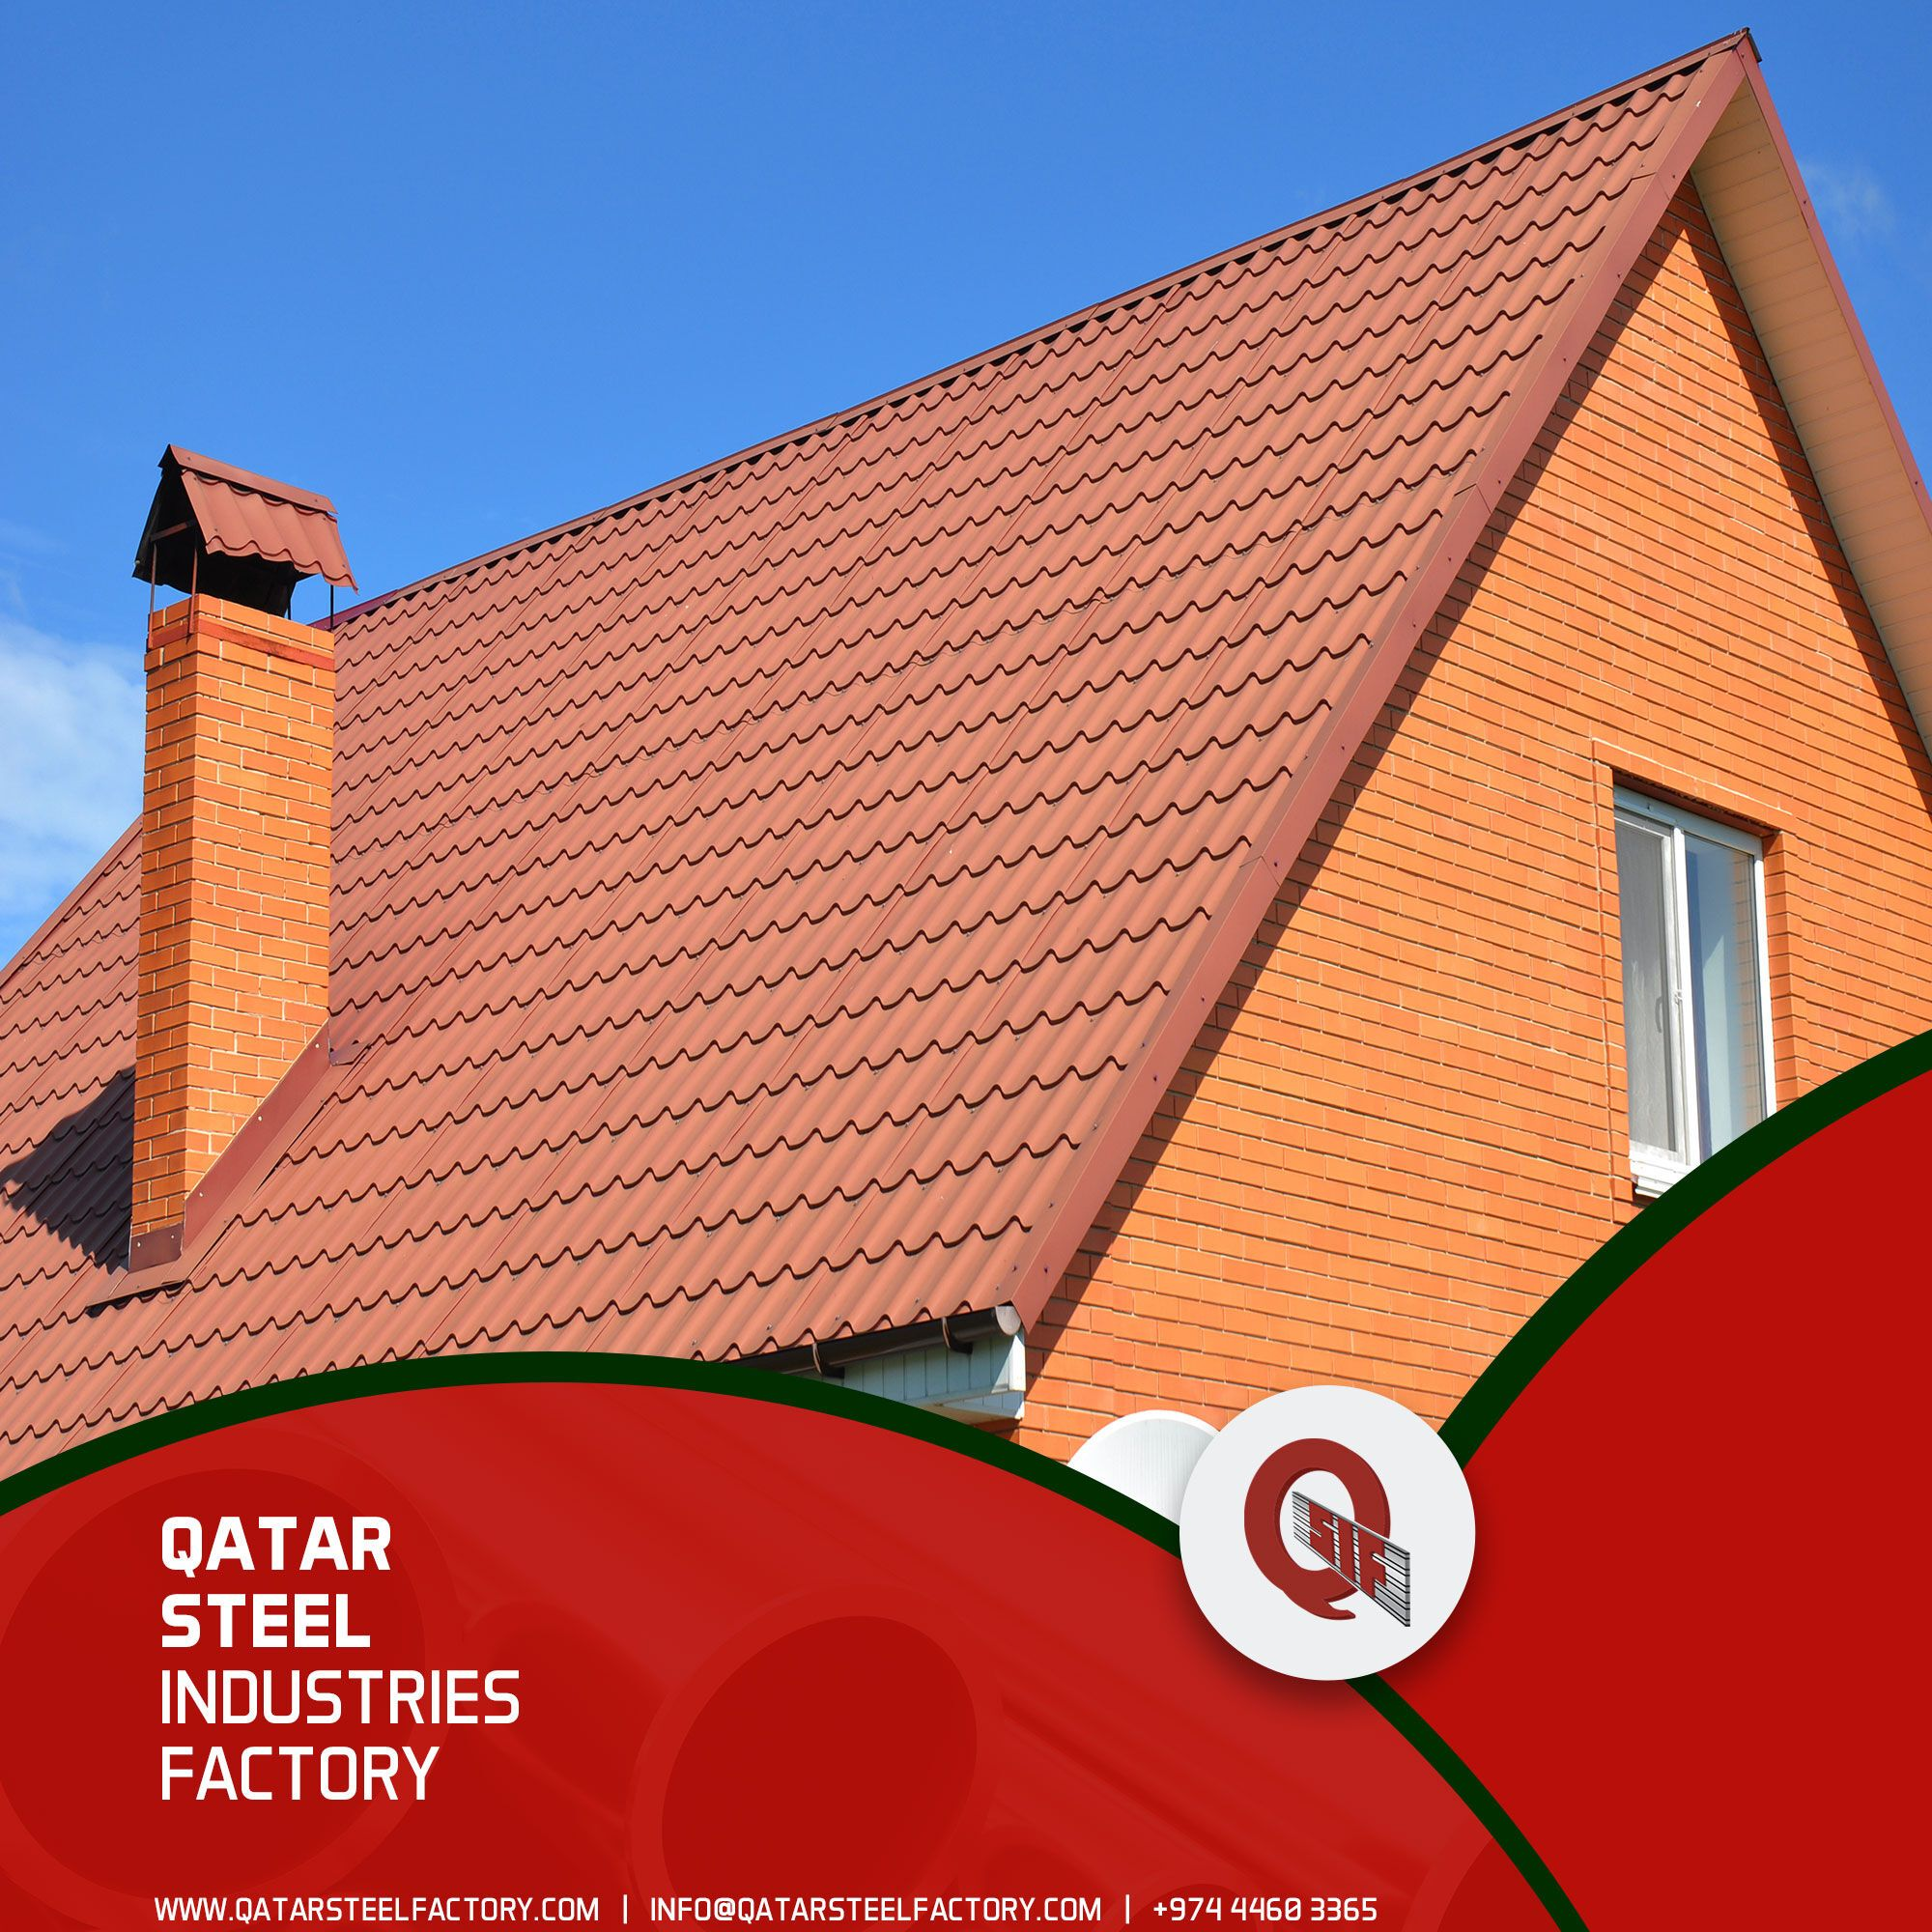 Roofing Tiles Or Roofing Tile Panels You Can Buy Whatever Size Or Type Of Steel You Need Quickly And Easily C In 2020 Roof Panels Galvanized Roofing Types Of Steel